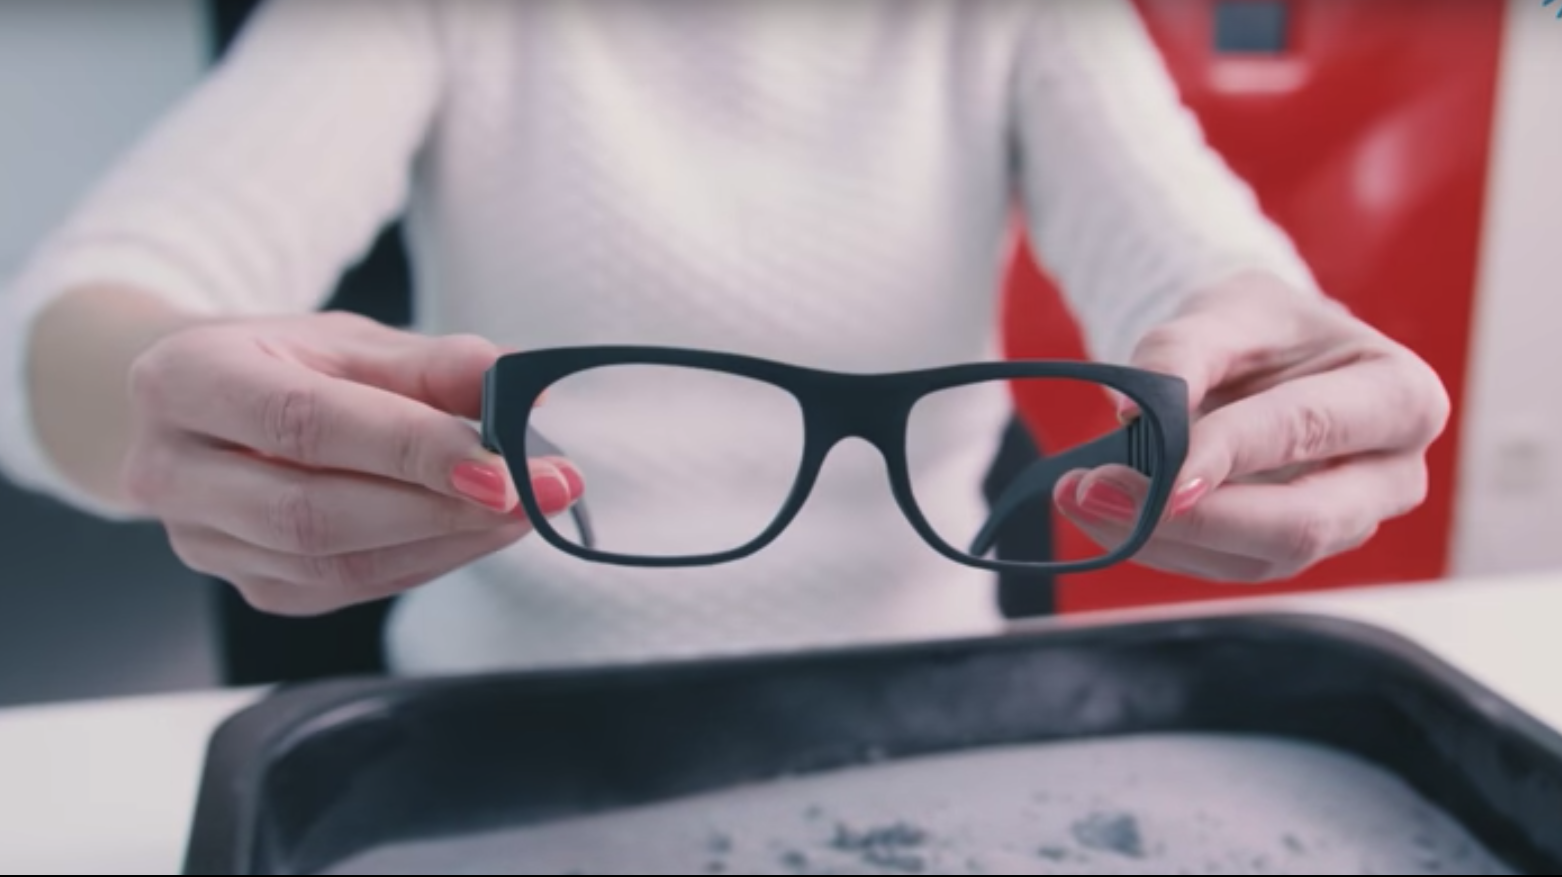 Janne Kyttanen Releases Sleek Eyewear Designs You Can Personalize and 3D Print | All3DP